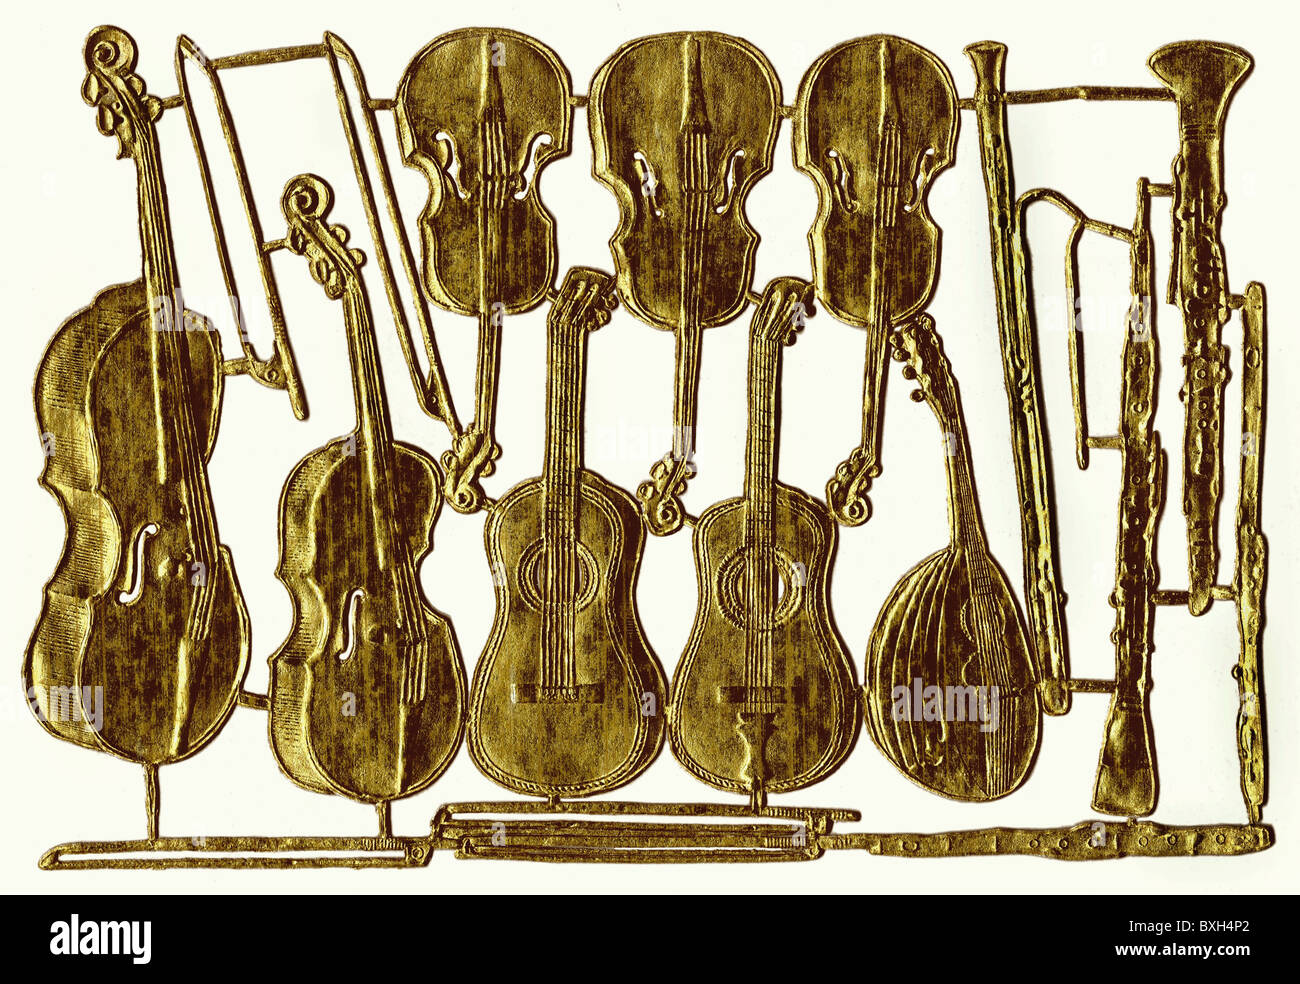 music, instruments, bowed instruments, Great Britain, circa 1905, Additional-Rights-Clearences-NA - Stock Image